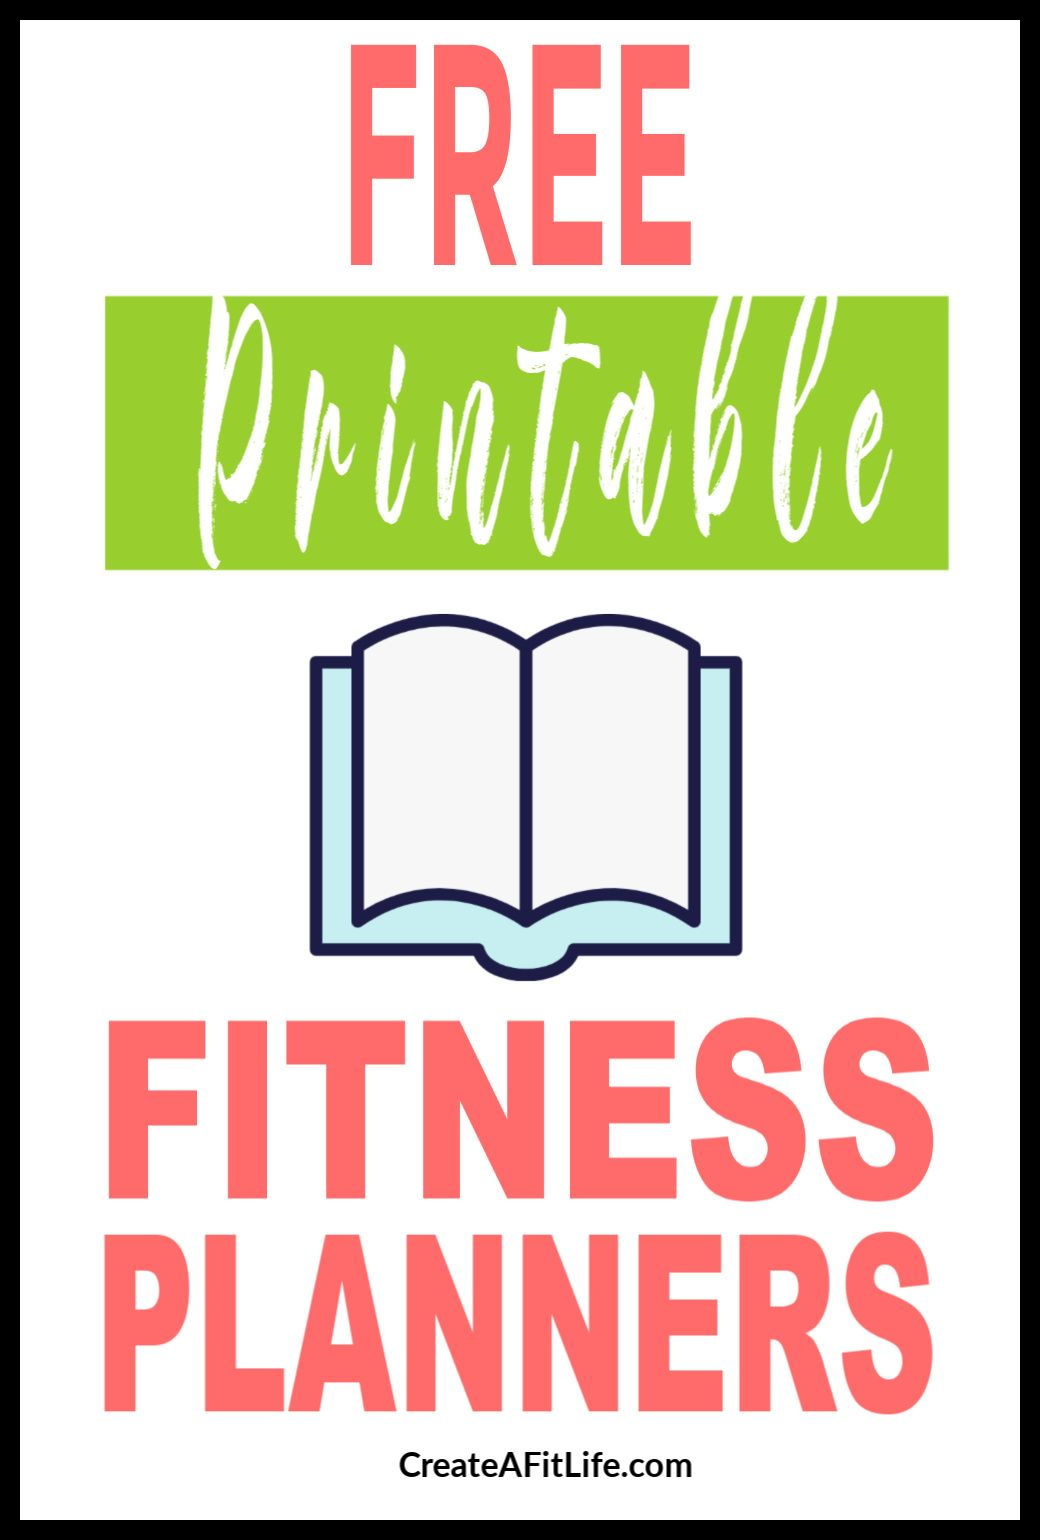 Free Printable Fitness Planners For Fitness Goal Setting